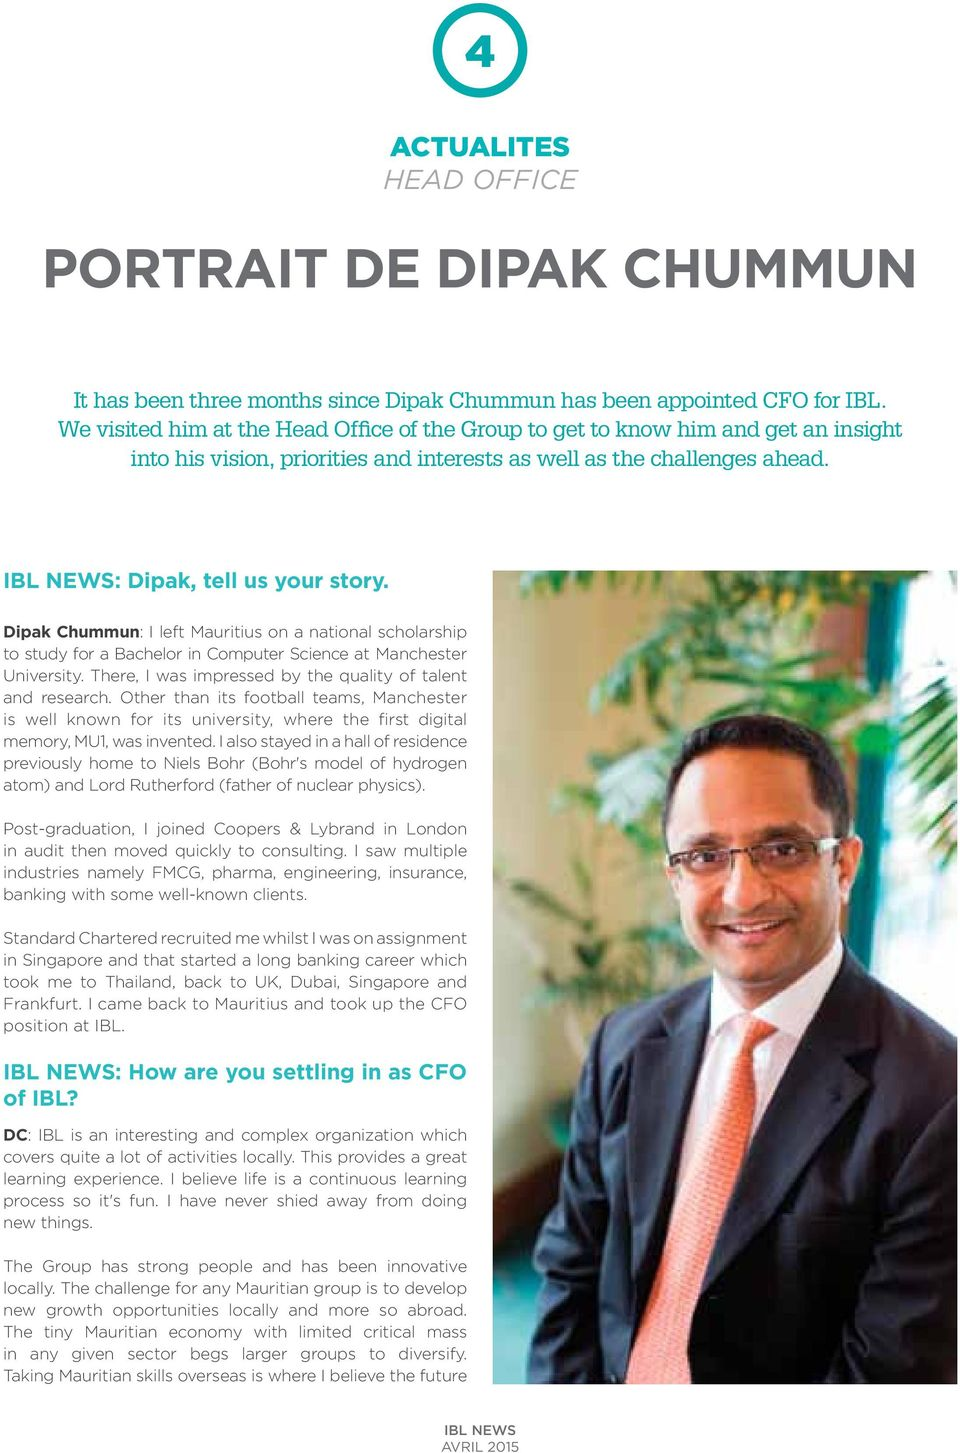 Dipak Chummun: I left Mauritius on a national scholarship to study for a Bachelor in Computer Science at Manchester University. There, I was impressed by the quality of talent and research.